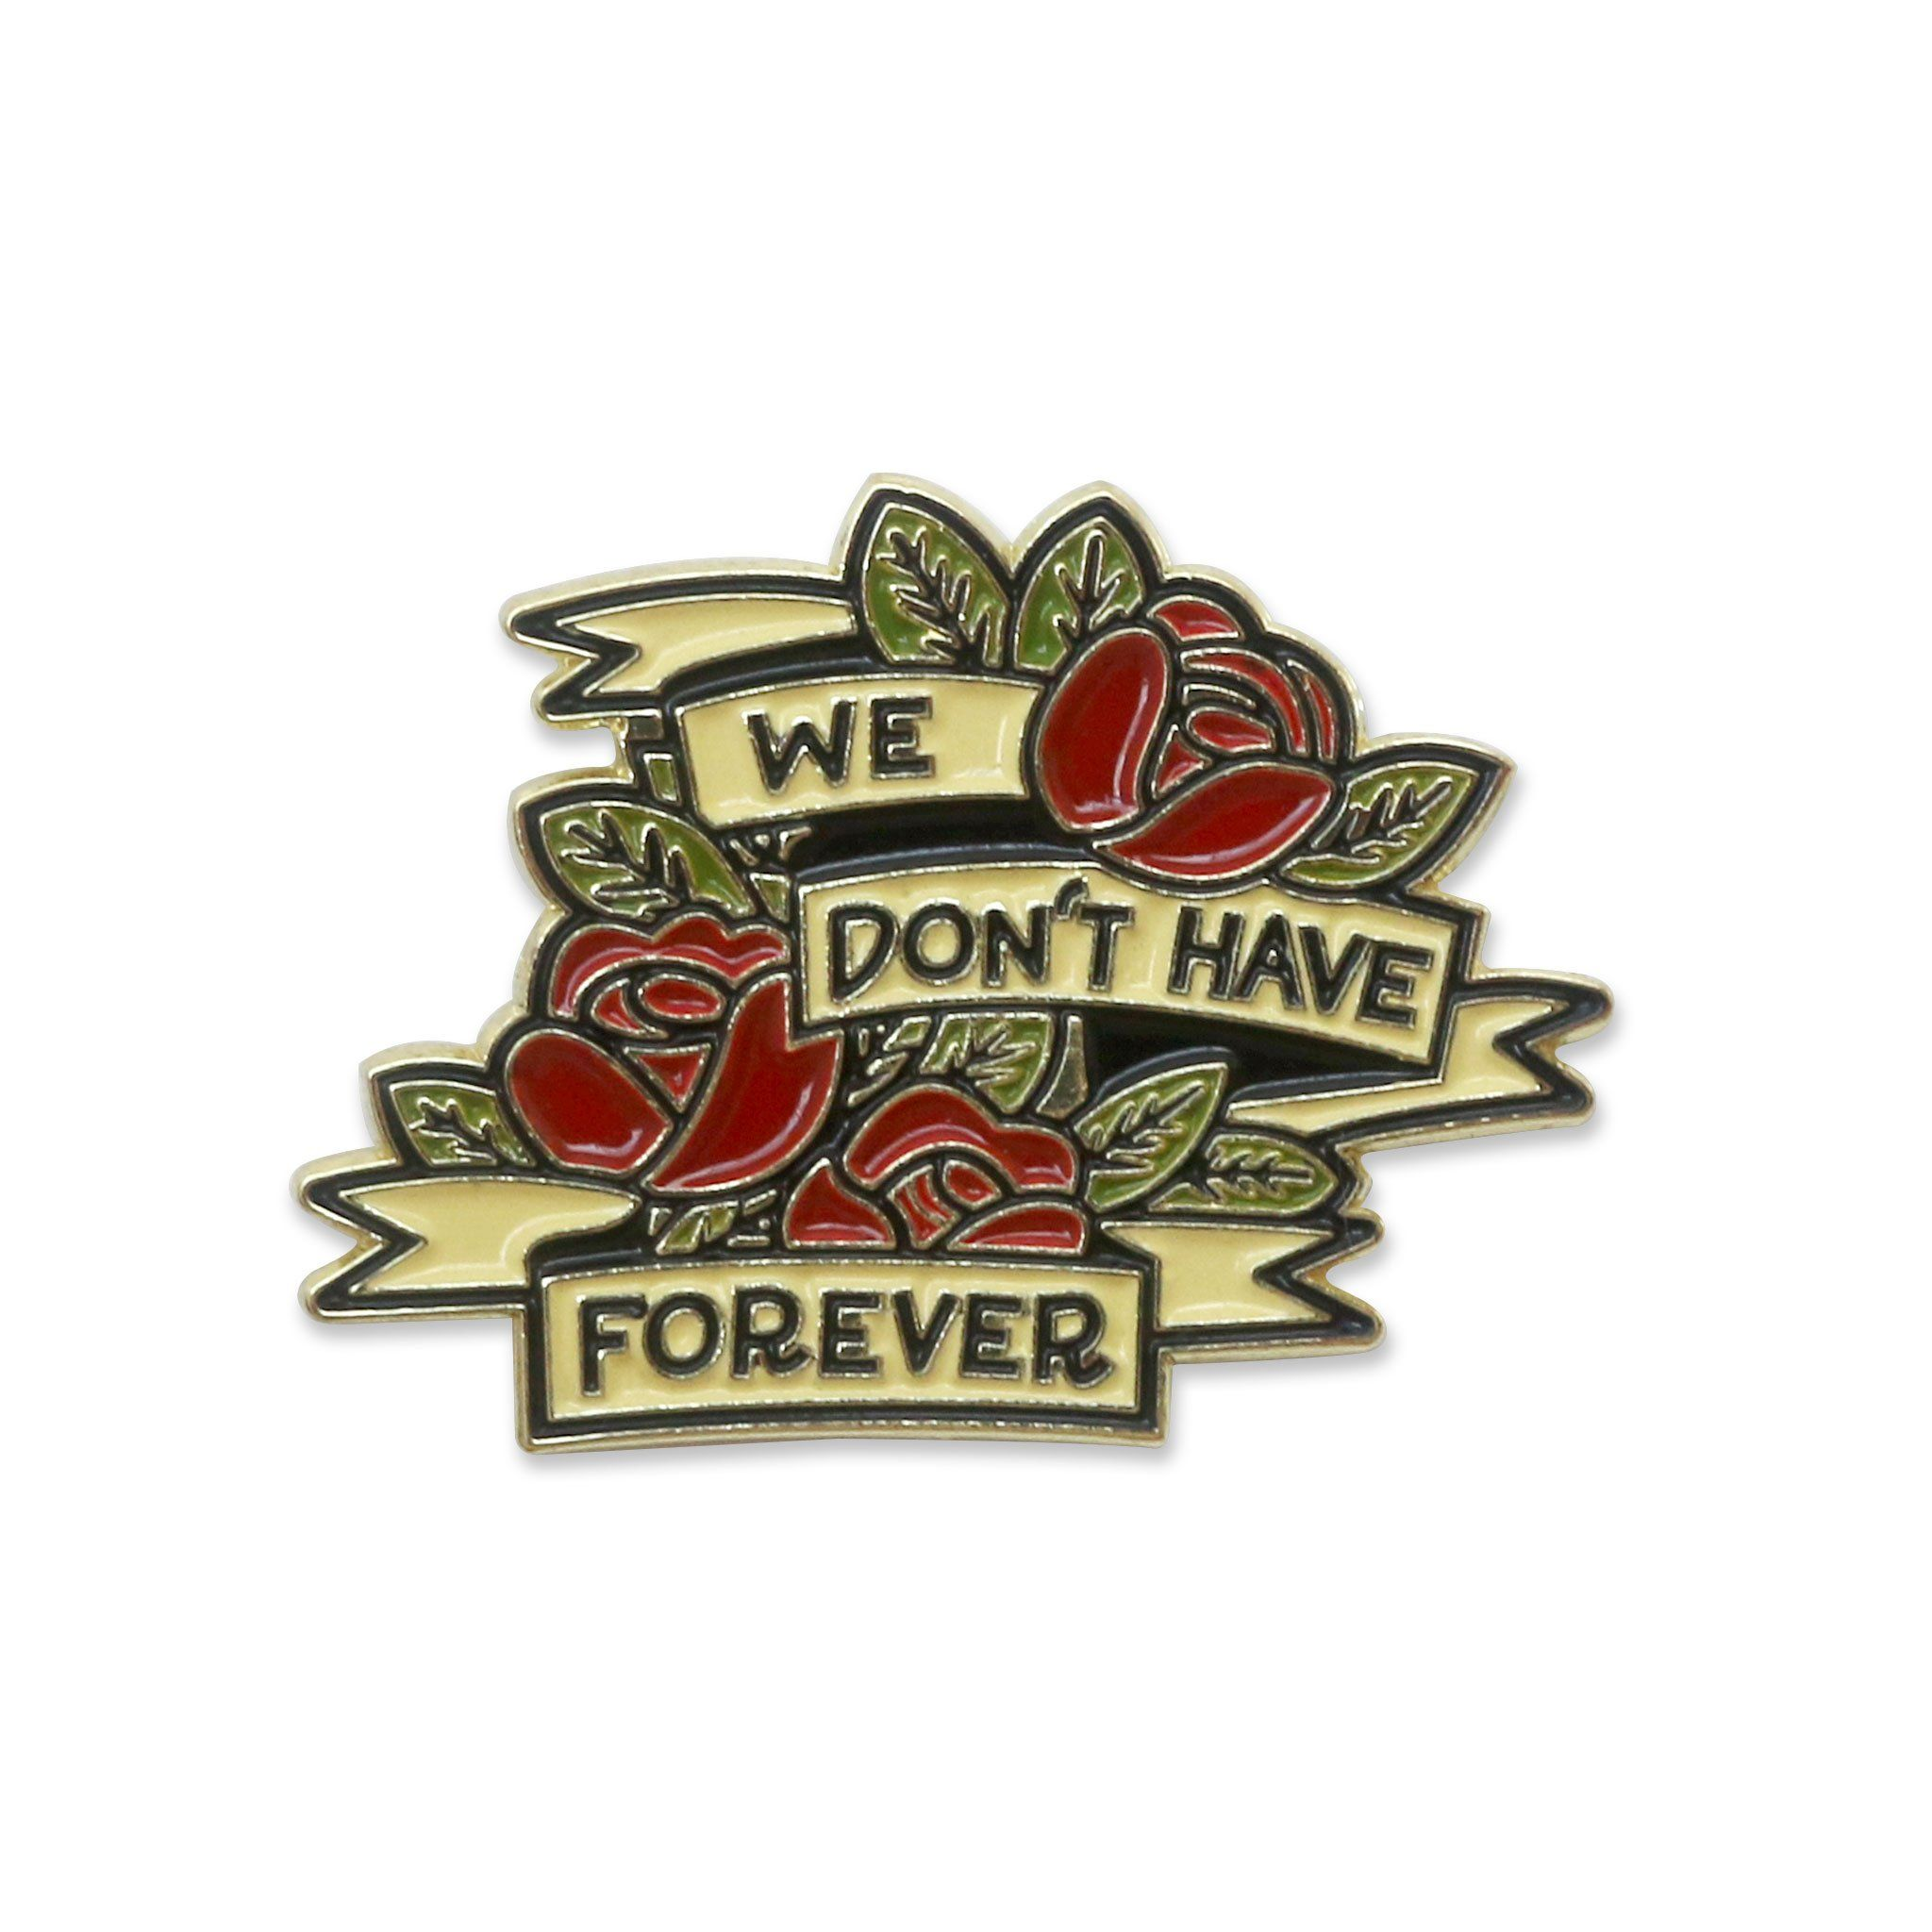 Don't Have Forever Lapel Pin (With Images)